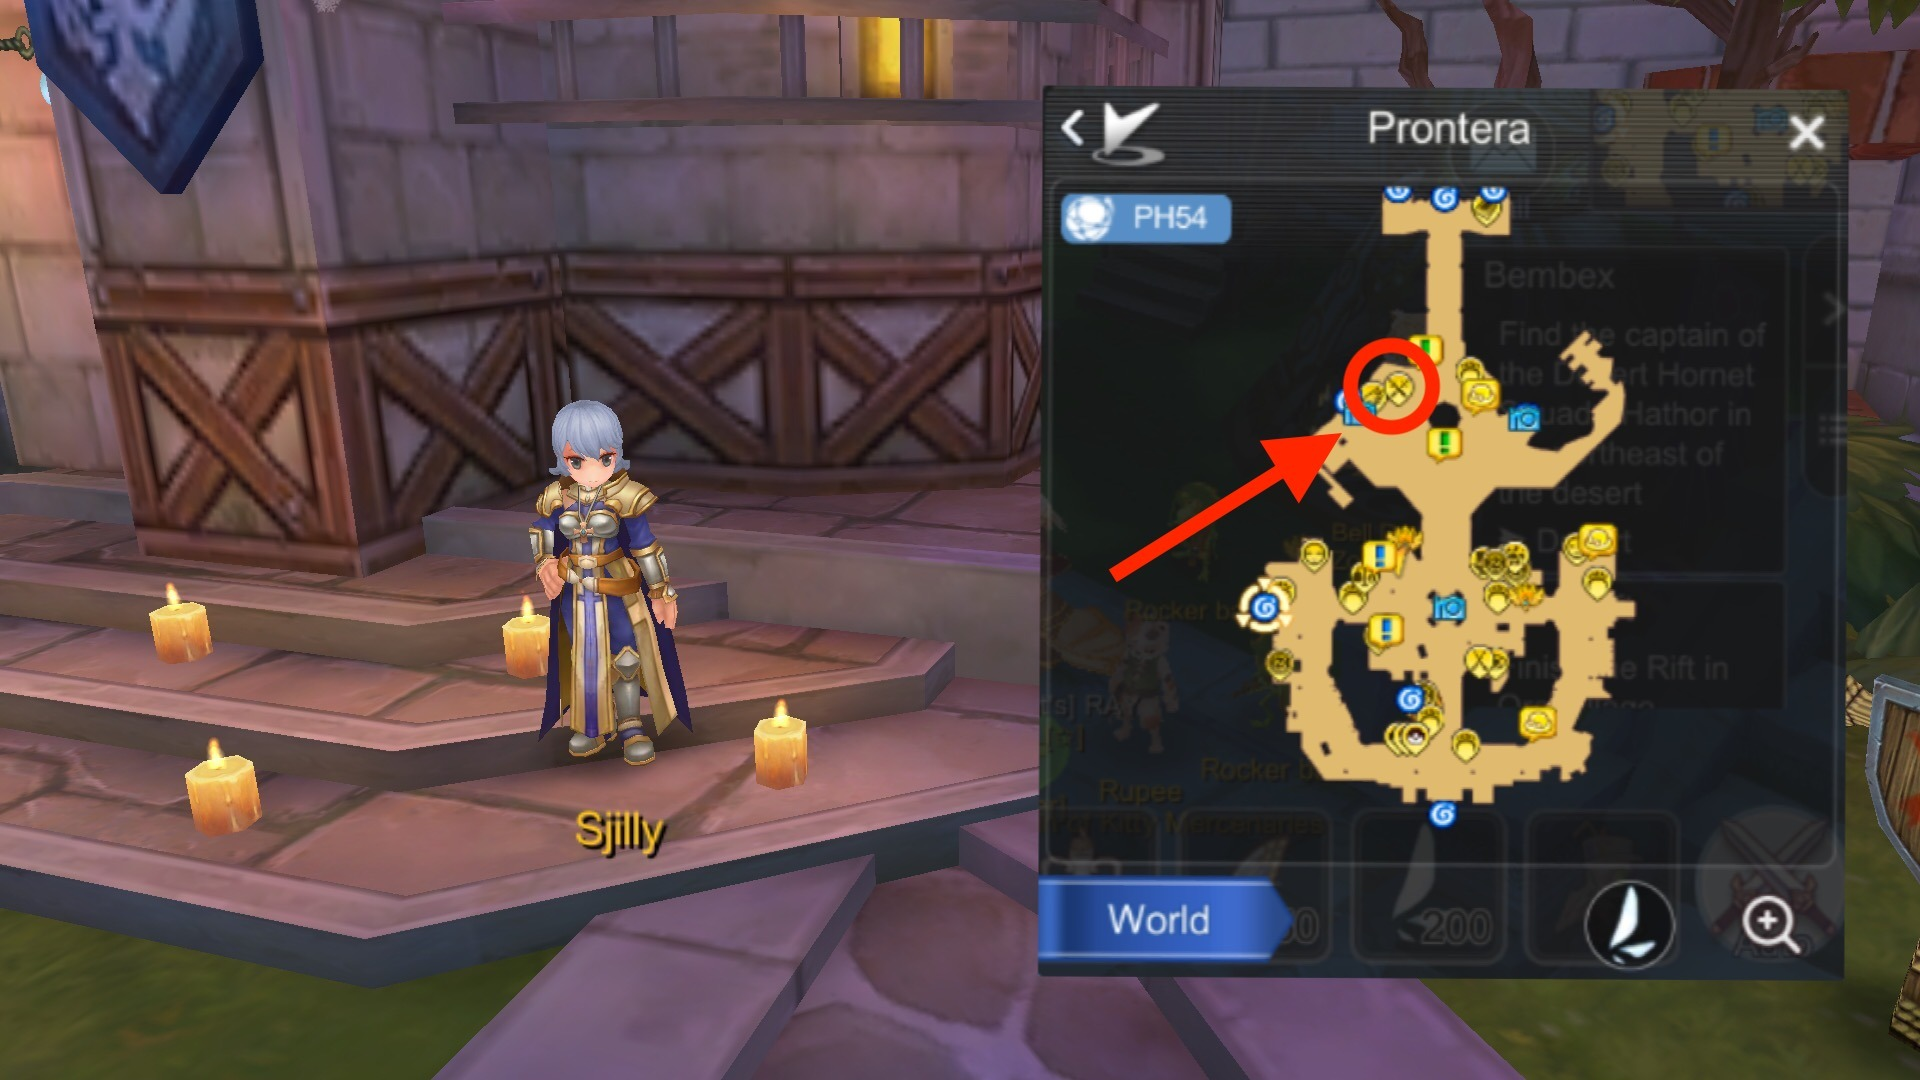 Sjilly NPC to unlock job breakthrough in Prontera to achieve job level 70